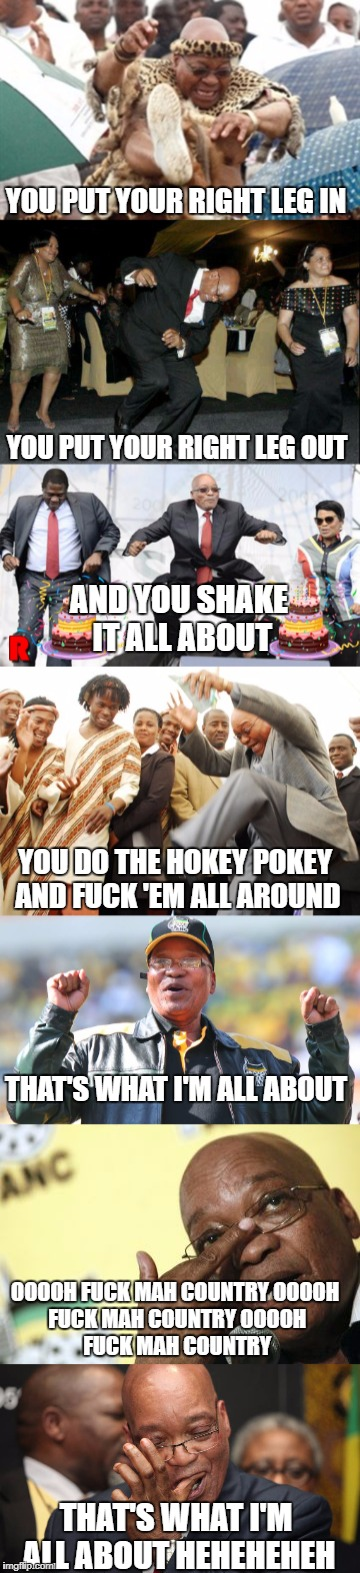 YOU PUT YOUR RIGHT LEG IN YOU PUT YOUR RIGHT LEG OUT AND YOU SHAKE IT ALL ABOUT YOU DO THE HOKEY POKEY AND F**K 'EM ALL AROUND THAT'S WHAT I | image tagged in south africa,wtf | made w/ Imgflip meme maker